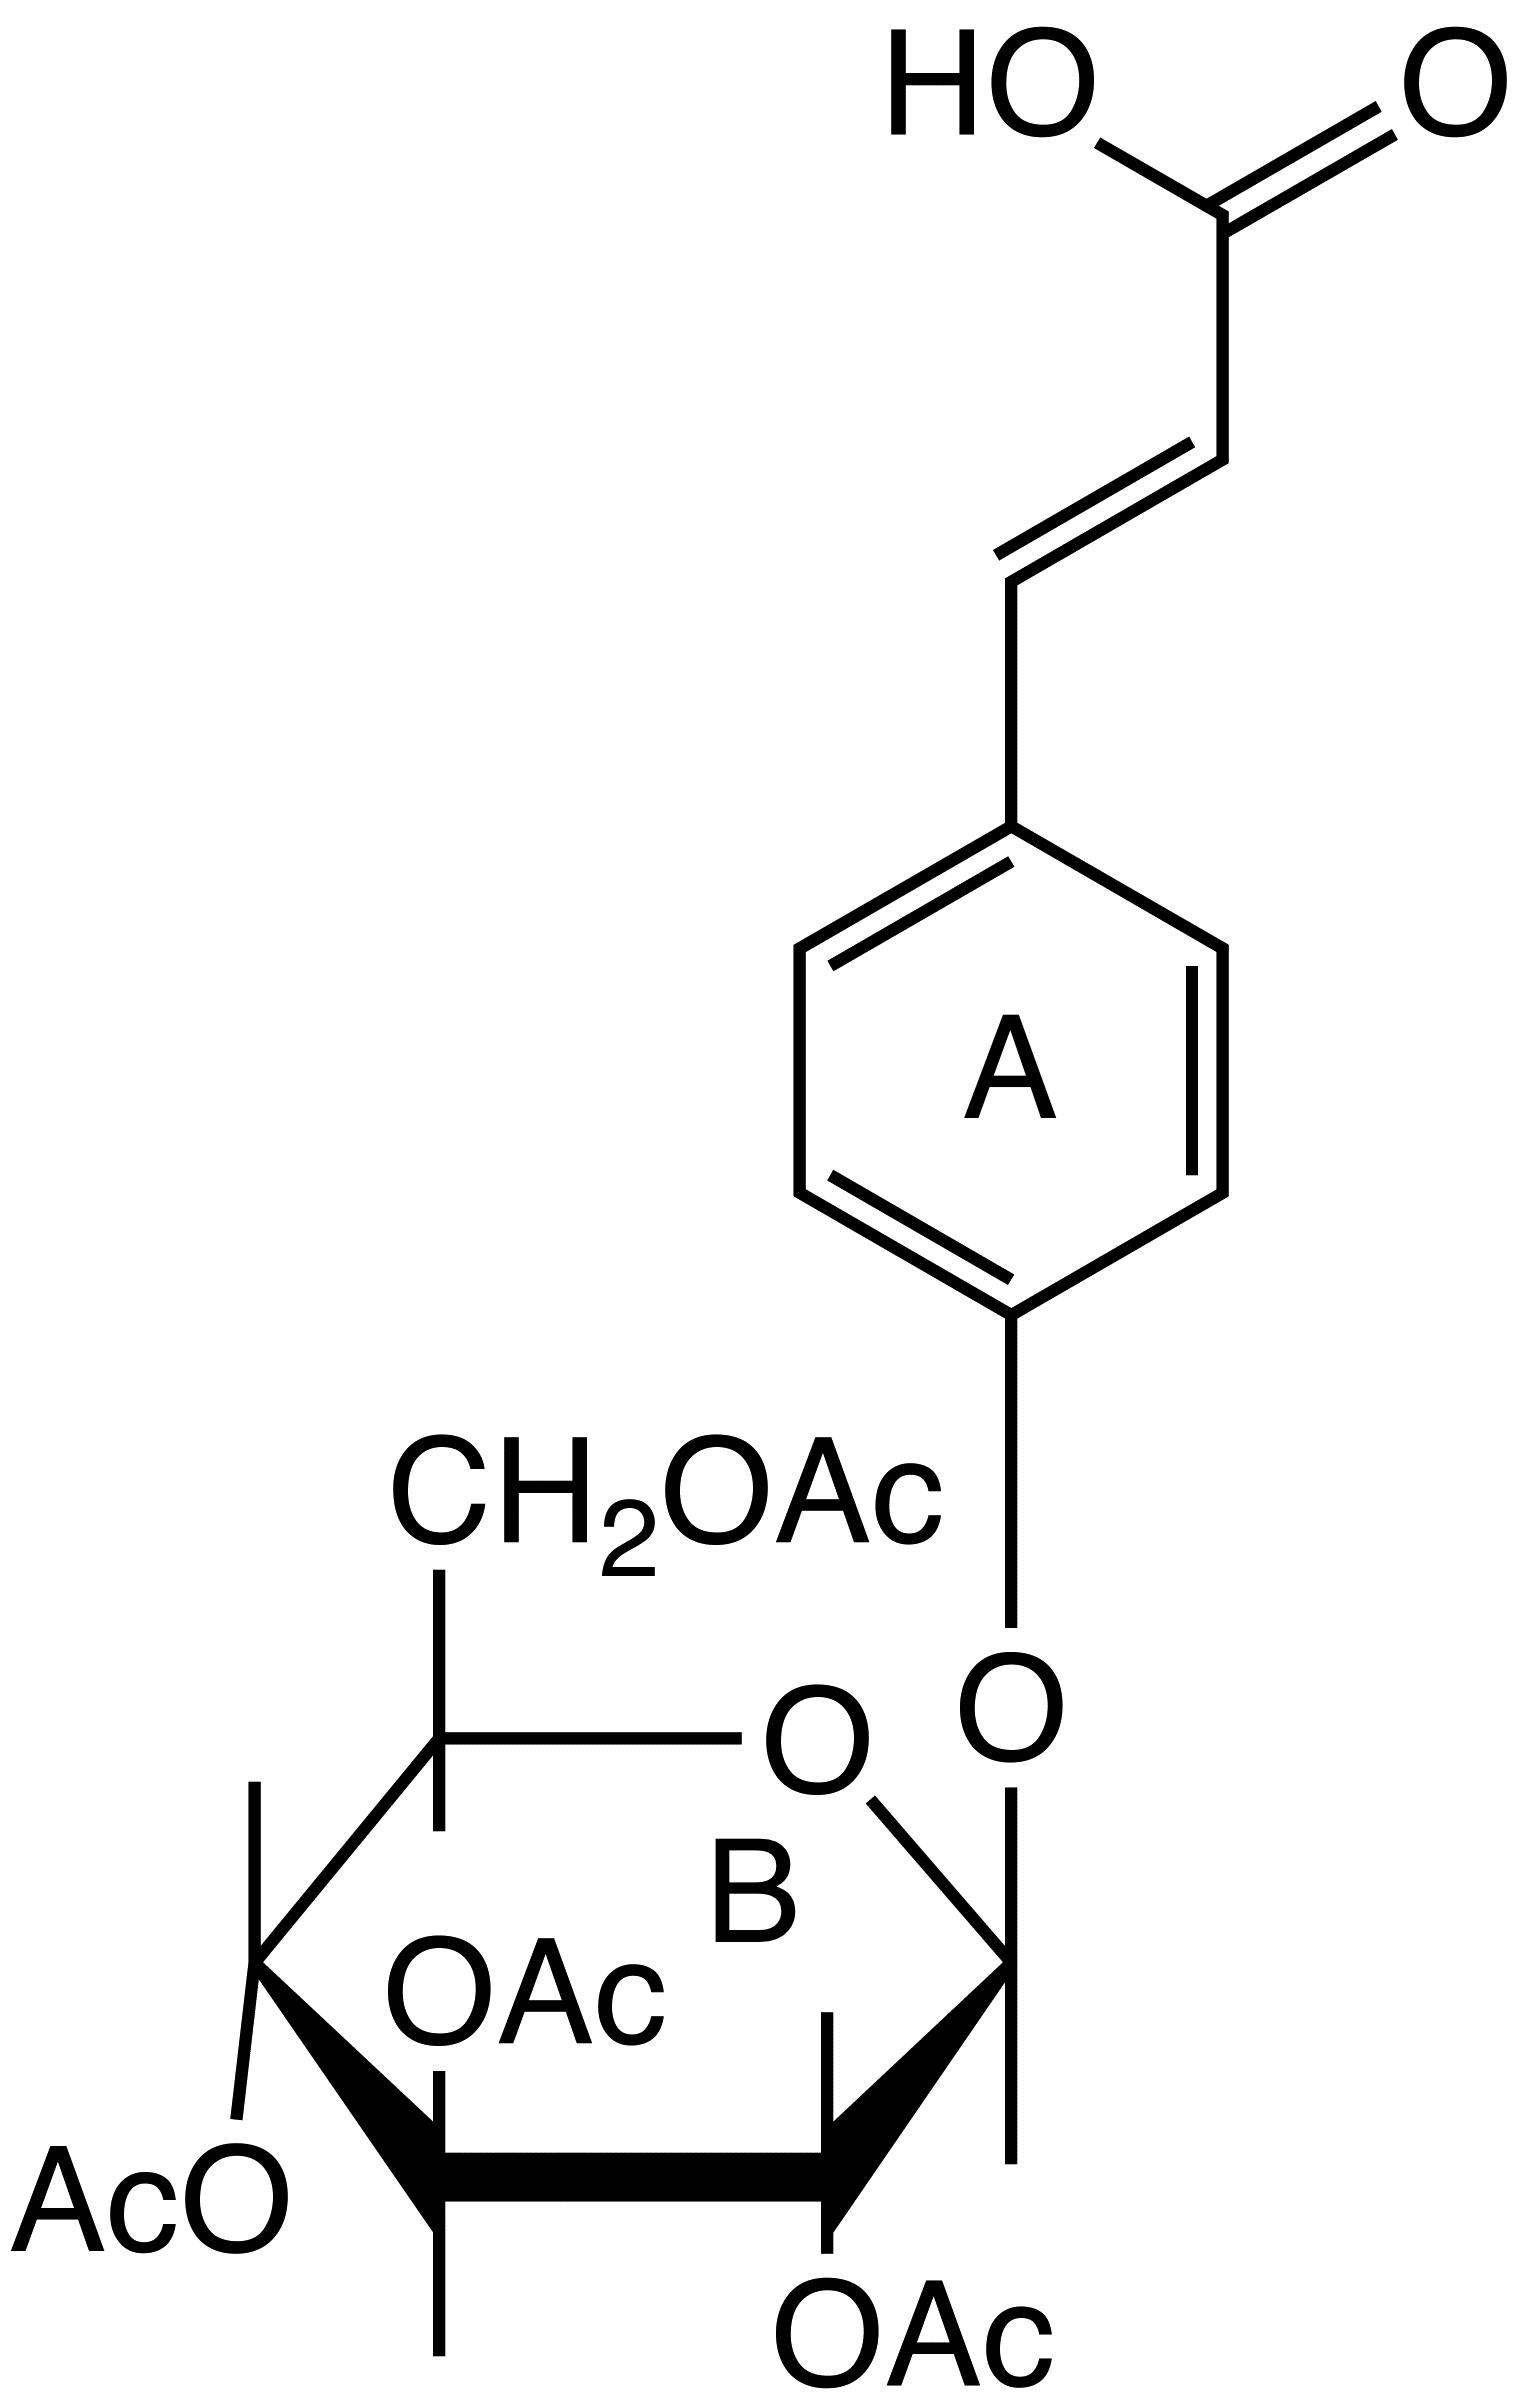 acetylated_p_gluco_cinnamic_acid image